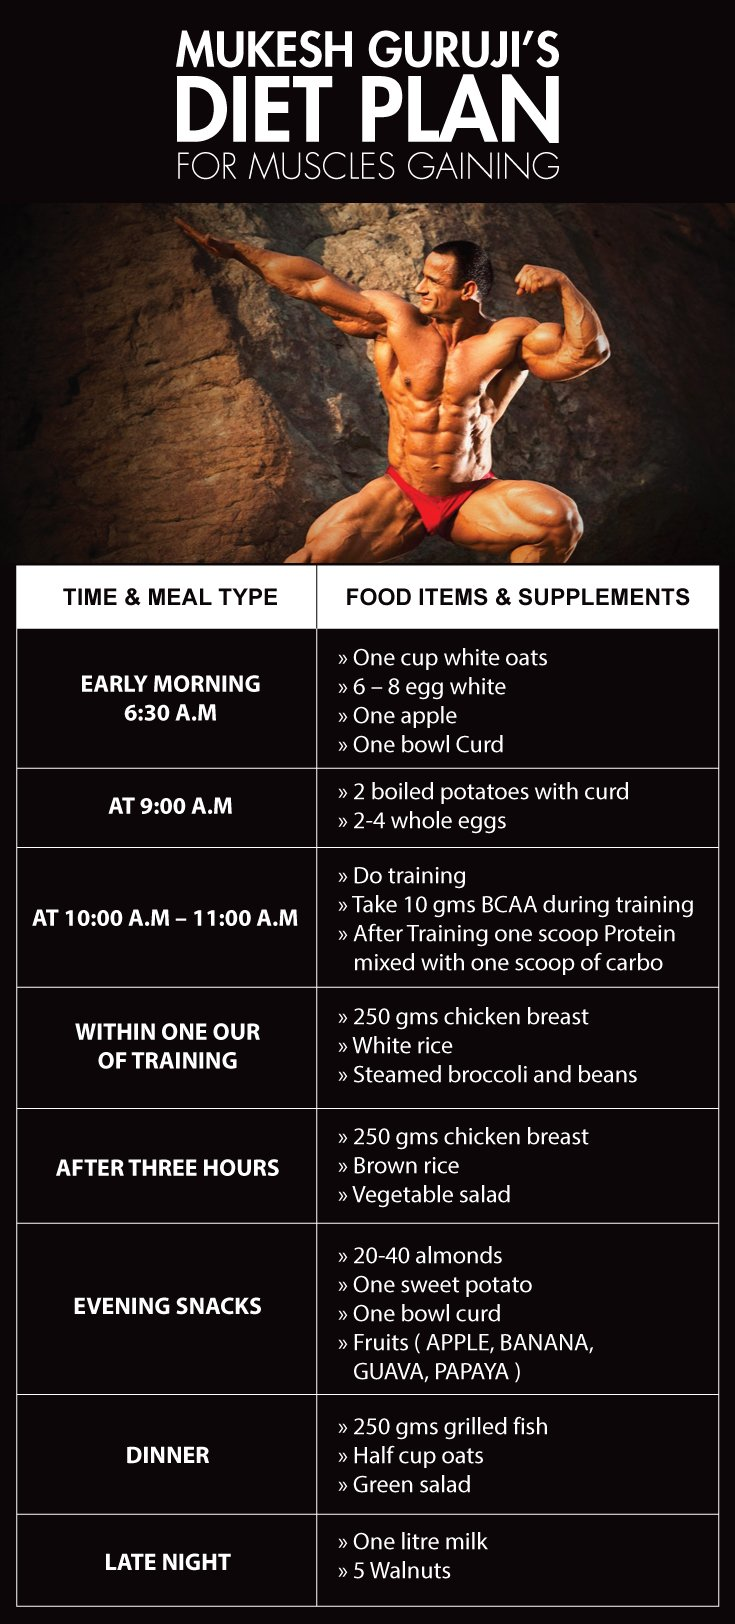 Mr india mukesh gahlot diet plan and workout mukesh gahlot diet plan malvernweather Image collections